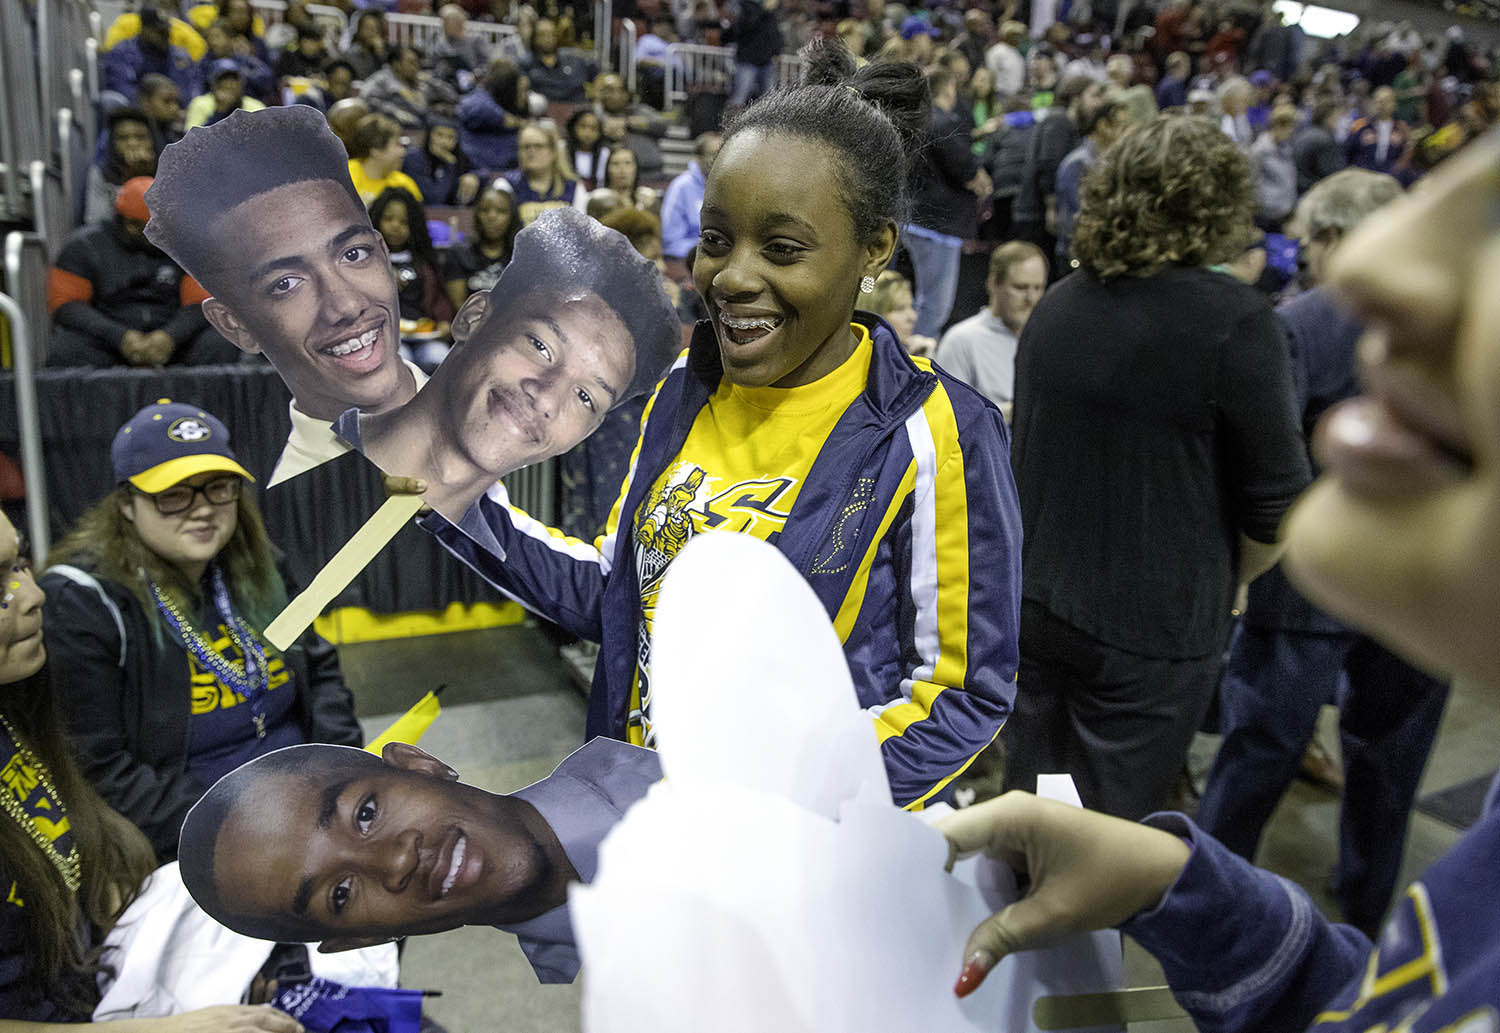 Southeast senior Leah Tiner hands out signs featuring Spartan players before the team takes the floor against Chicago Morgan Park during the 3A championship game at Carver Arena in Peoria, Ill., Saturday, March 17, 2018. [Ted Schurter/The State Journal-Register]